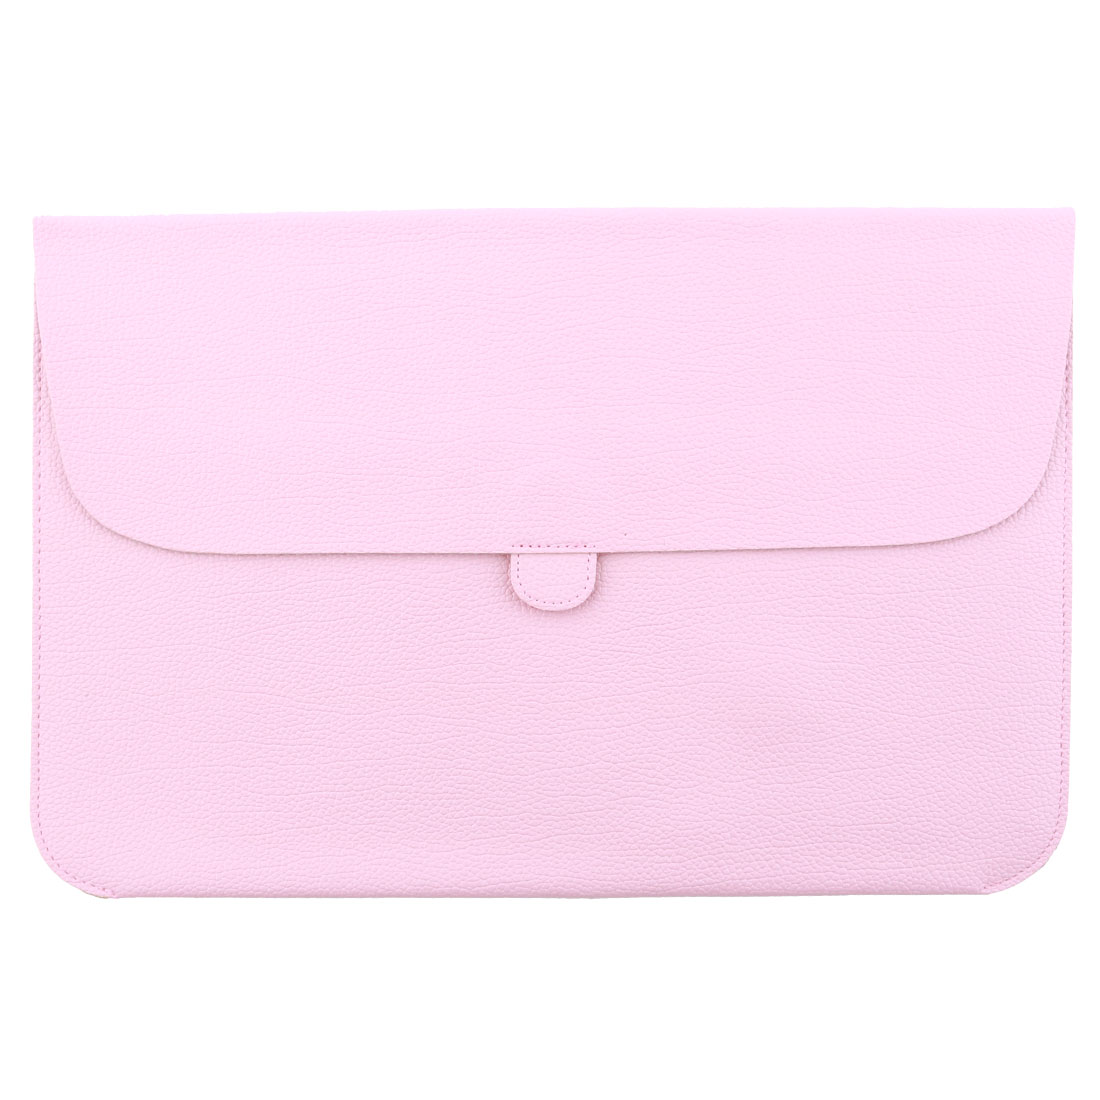 Laptop PU Leather Protective Sleeve Case Bag Pouch Cover Pink for Macbook Air 11 Inch